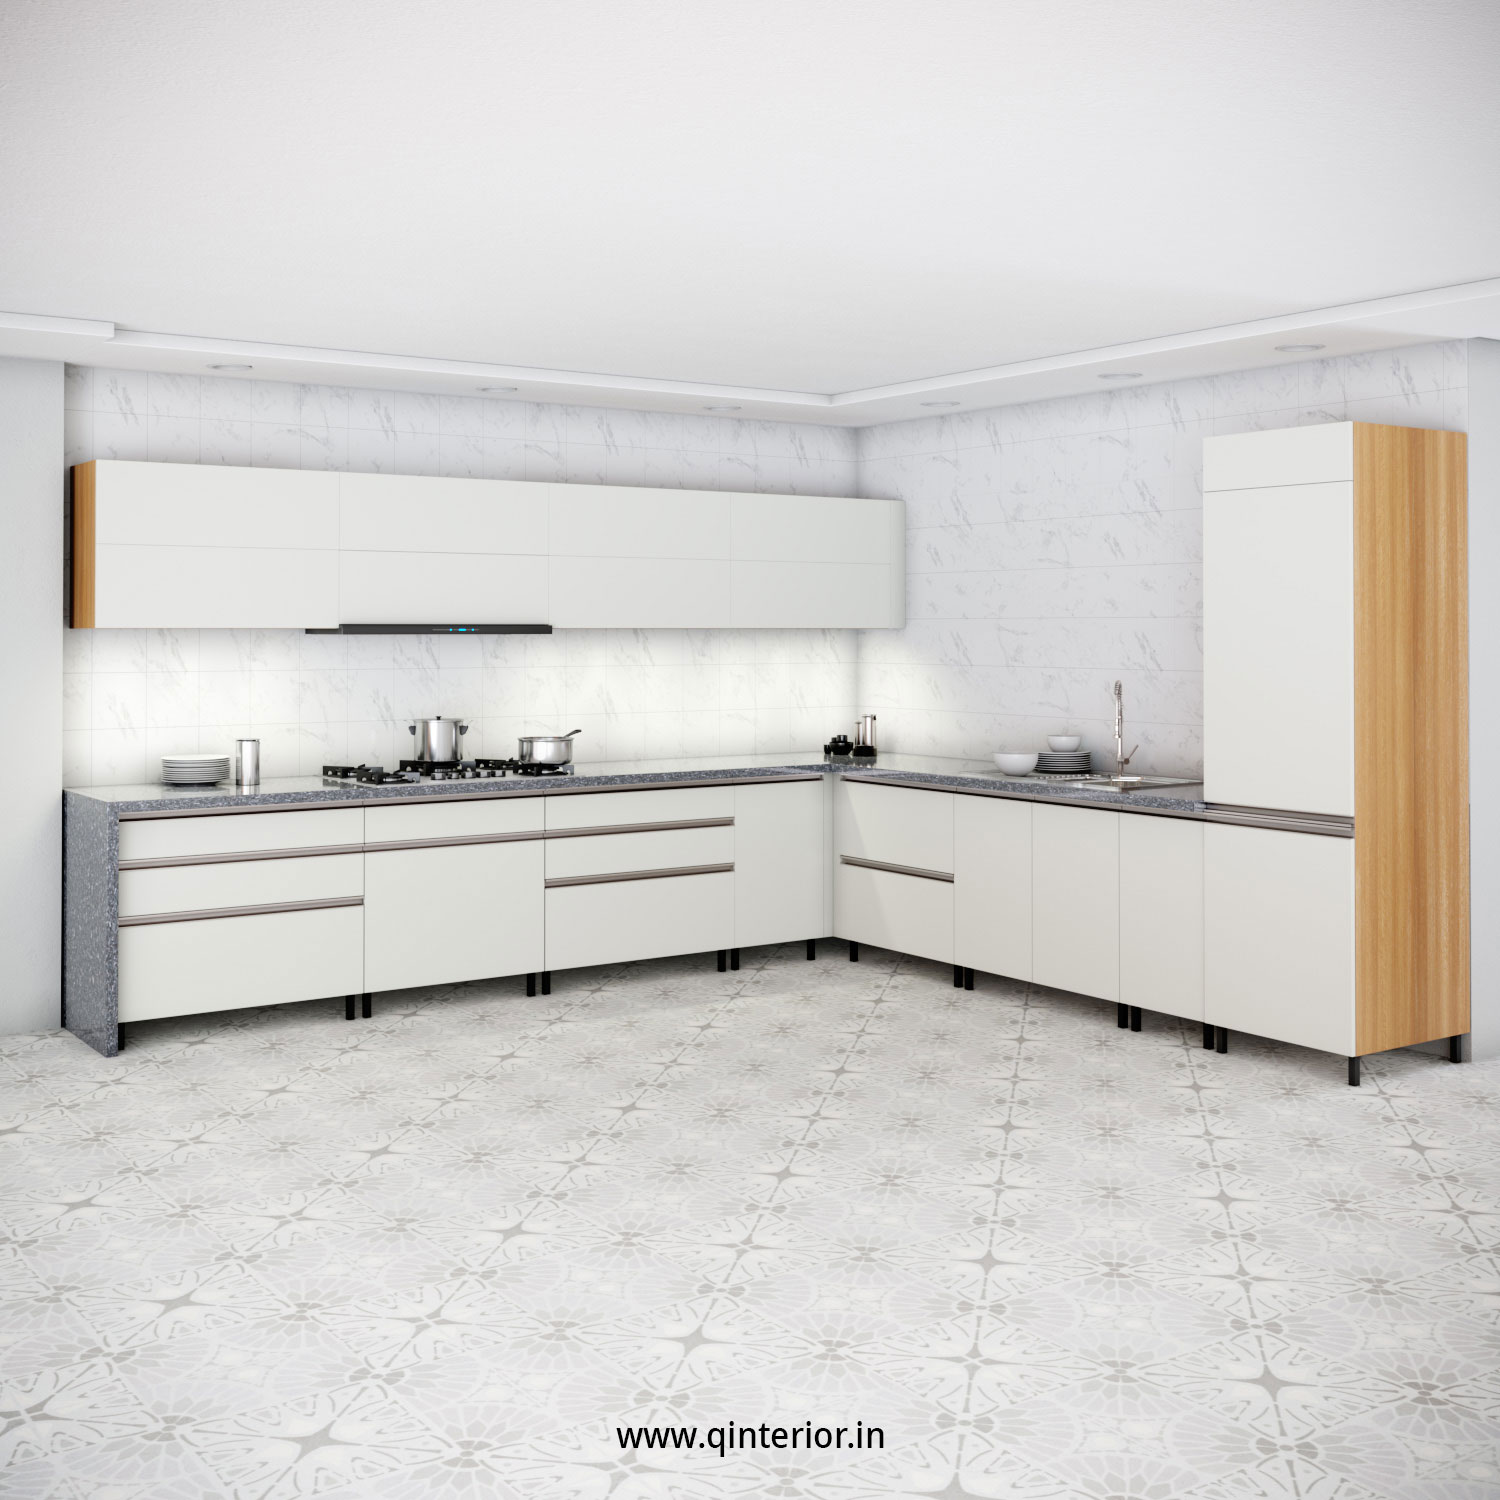 L Shape Kitchen in Oak and Pale Grey Finish - KTL001